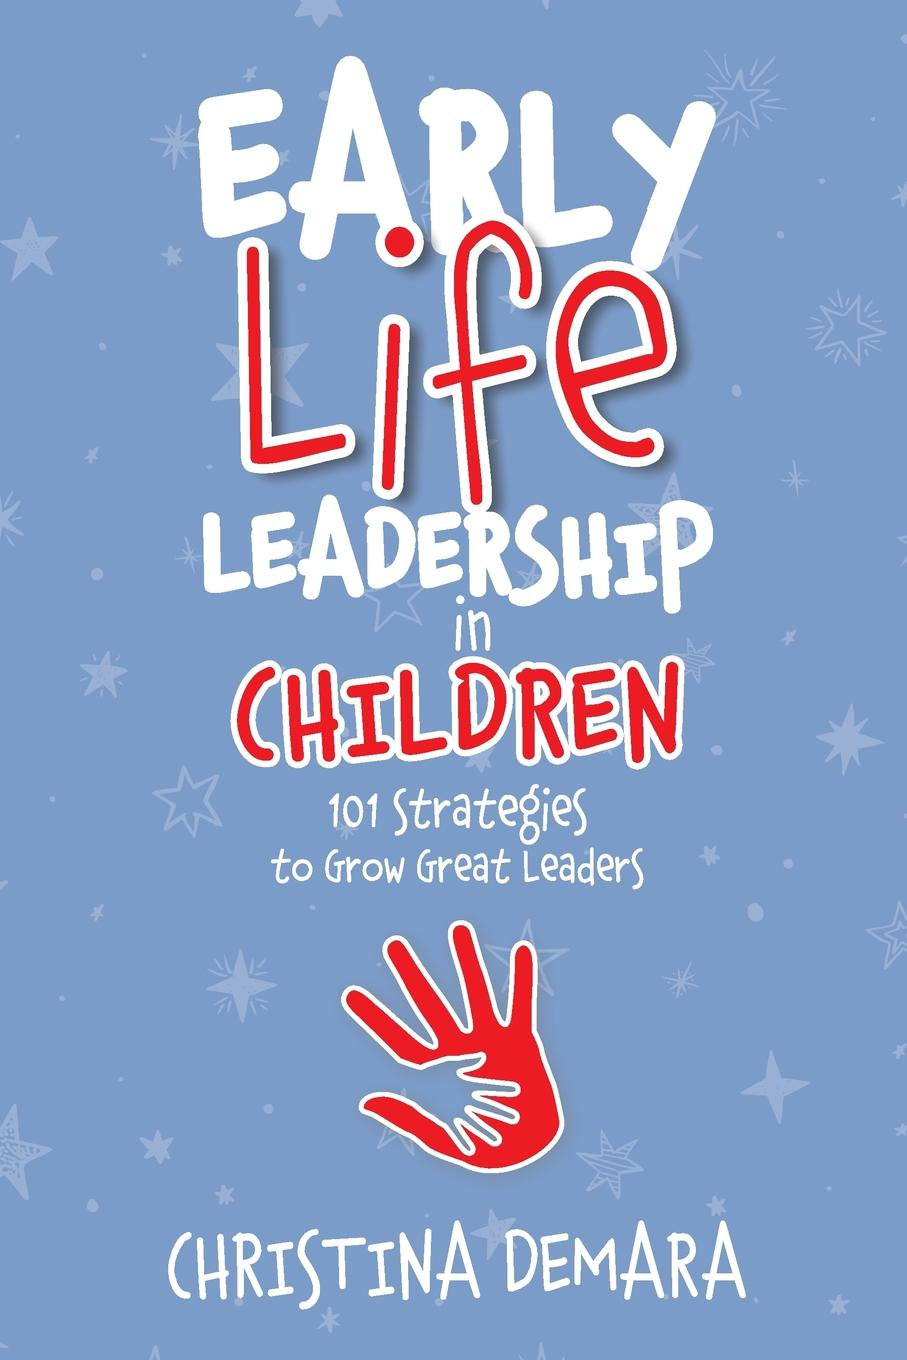 Christina DeMara Early Life Leadership in Children. 101 Strategies to Grow Great Leaders